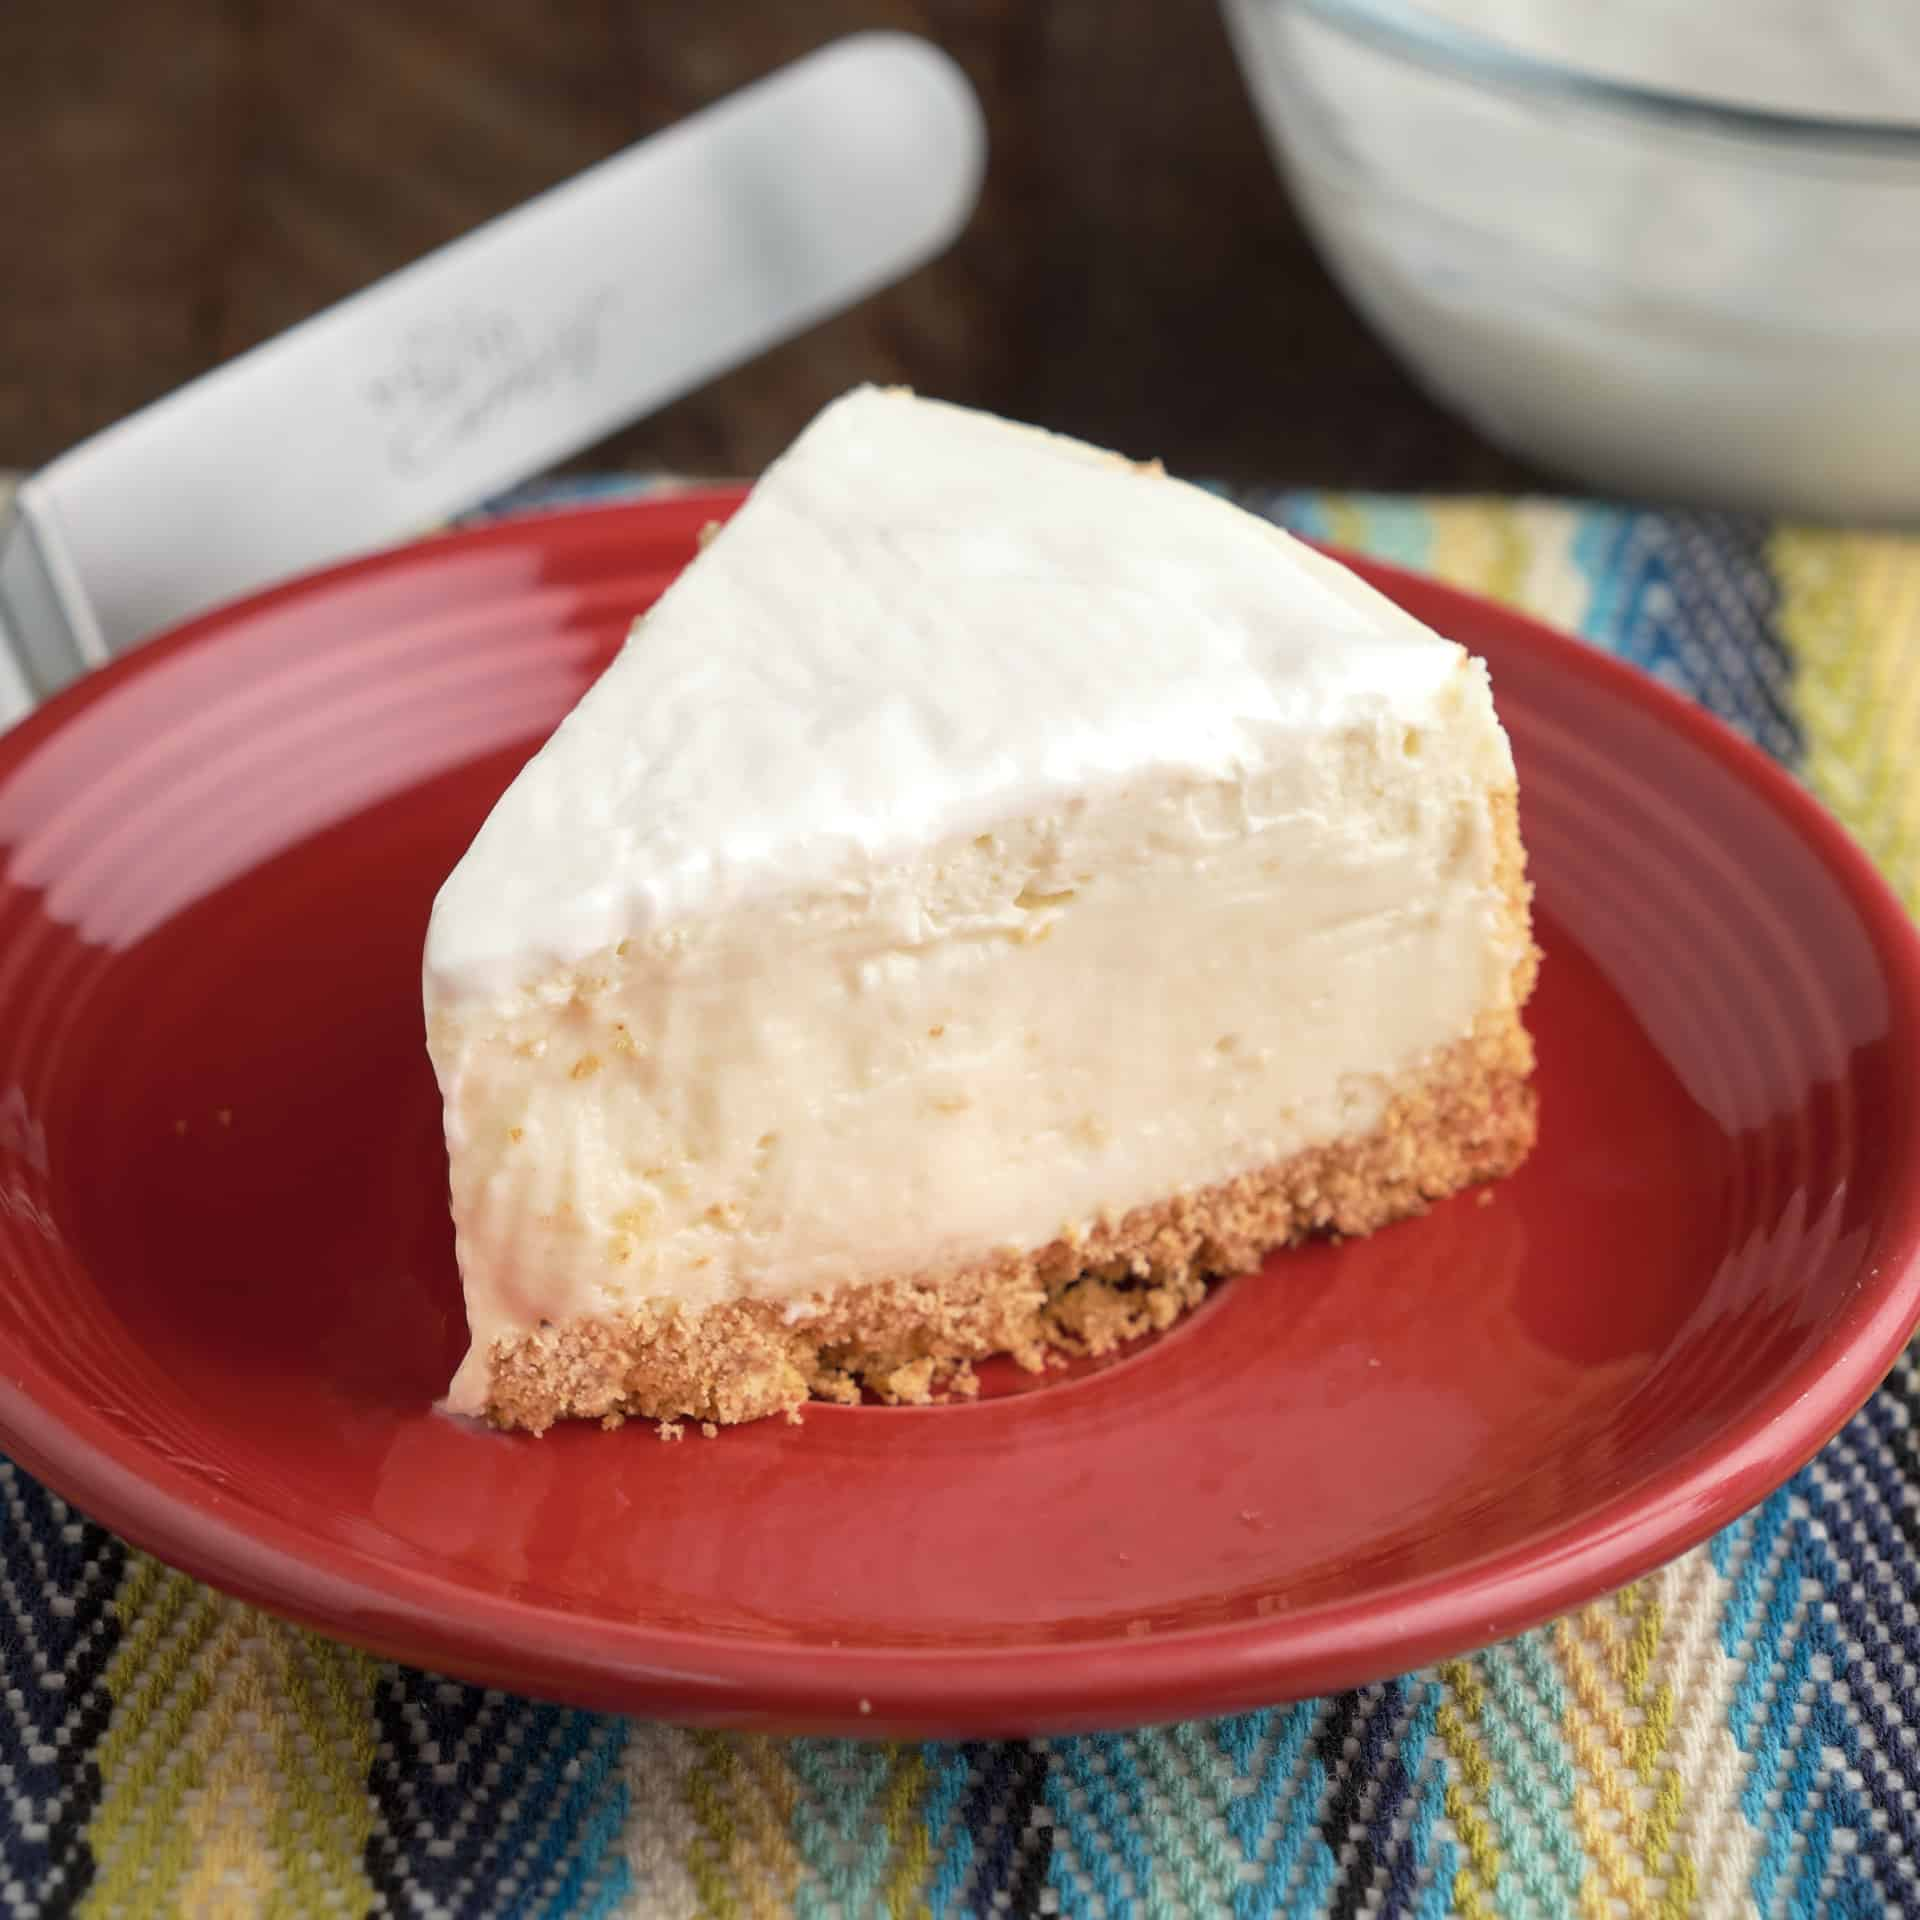 A slice of cheesecake with sour cream topping